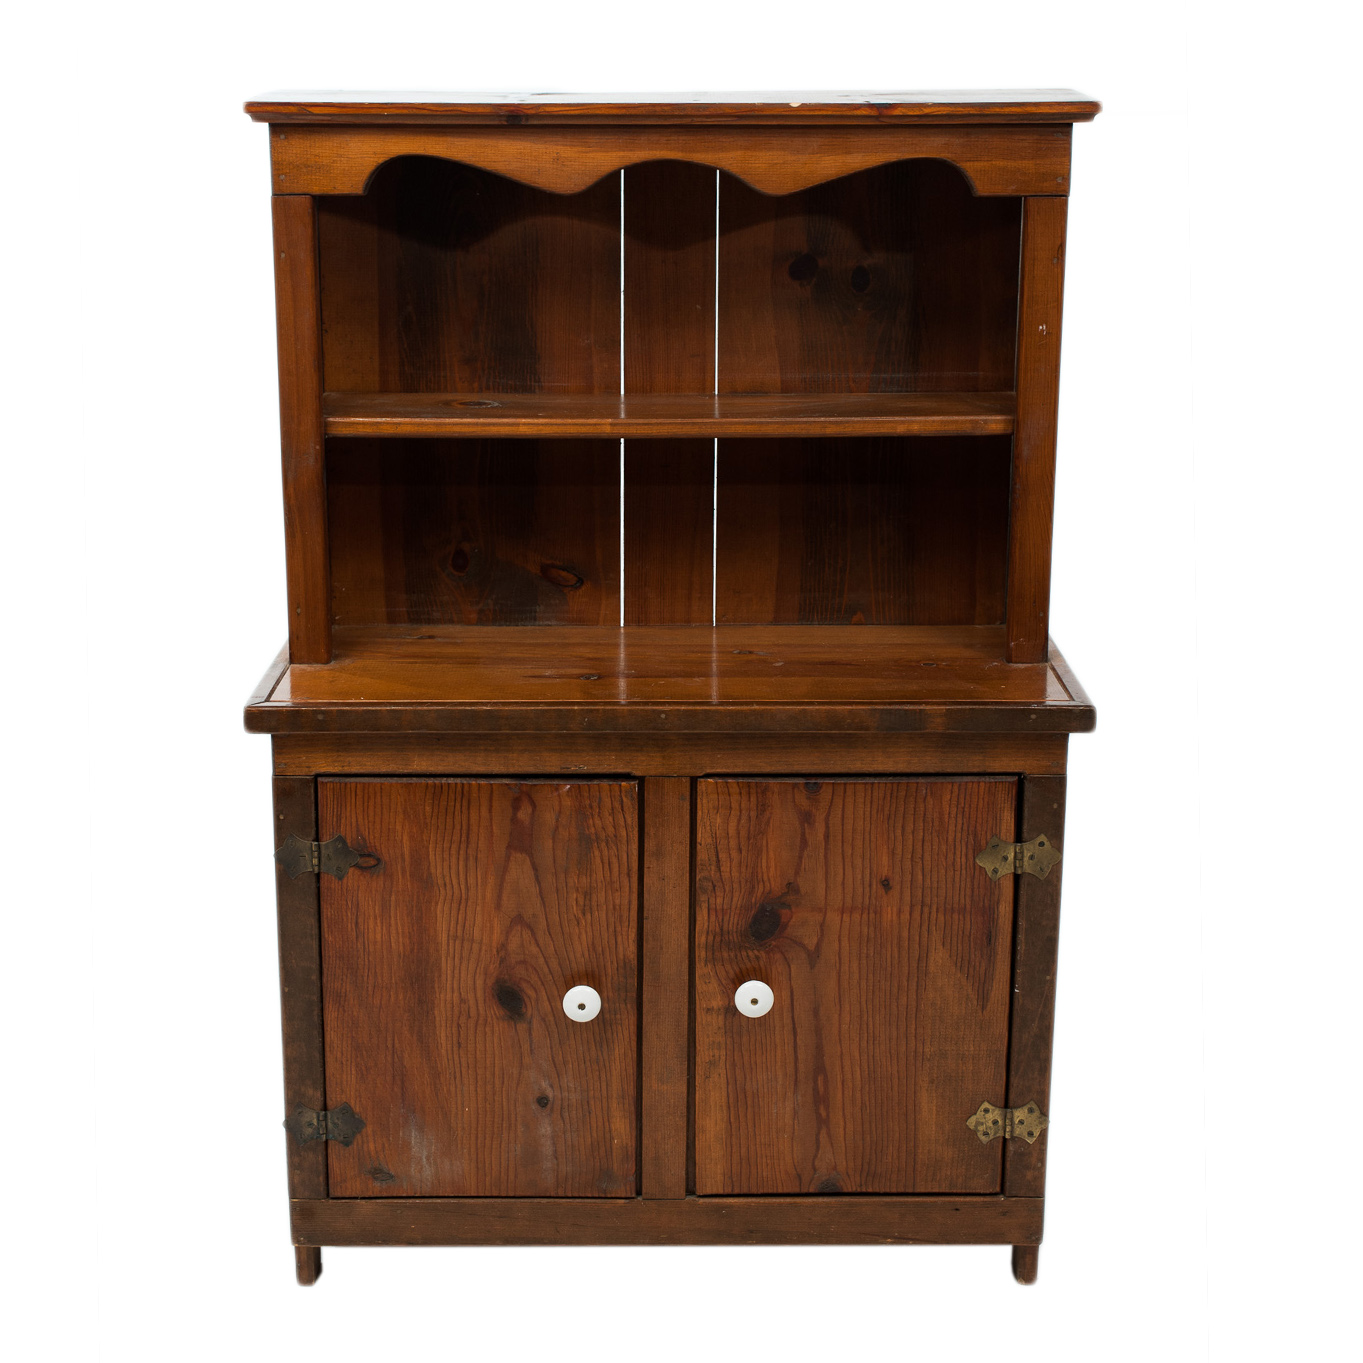 Child's Wooden Hutch